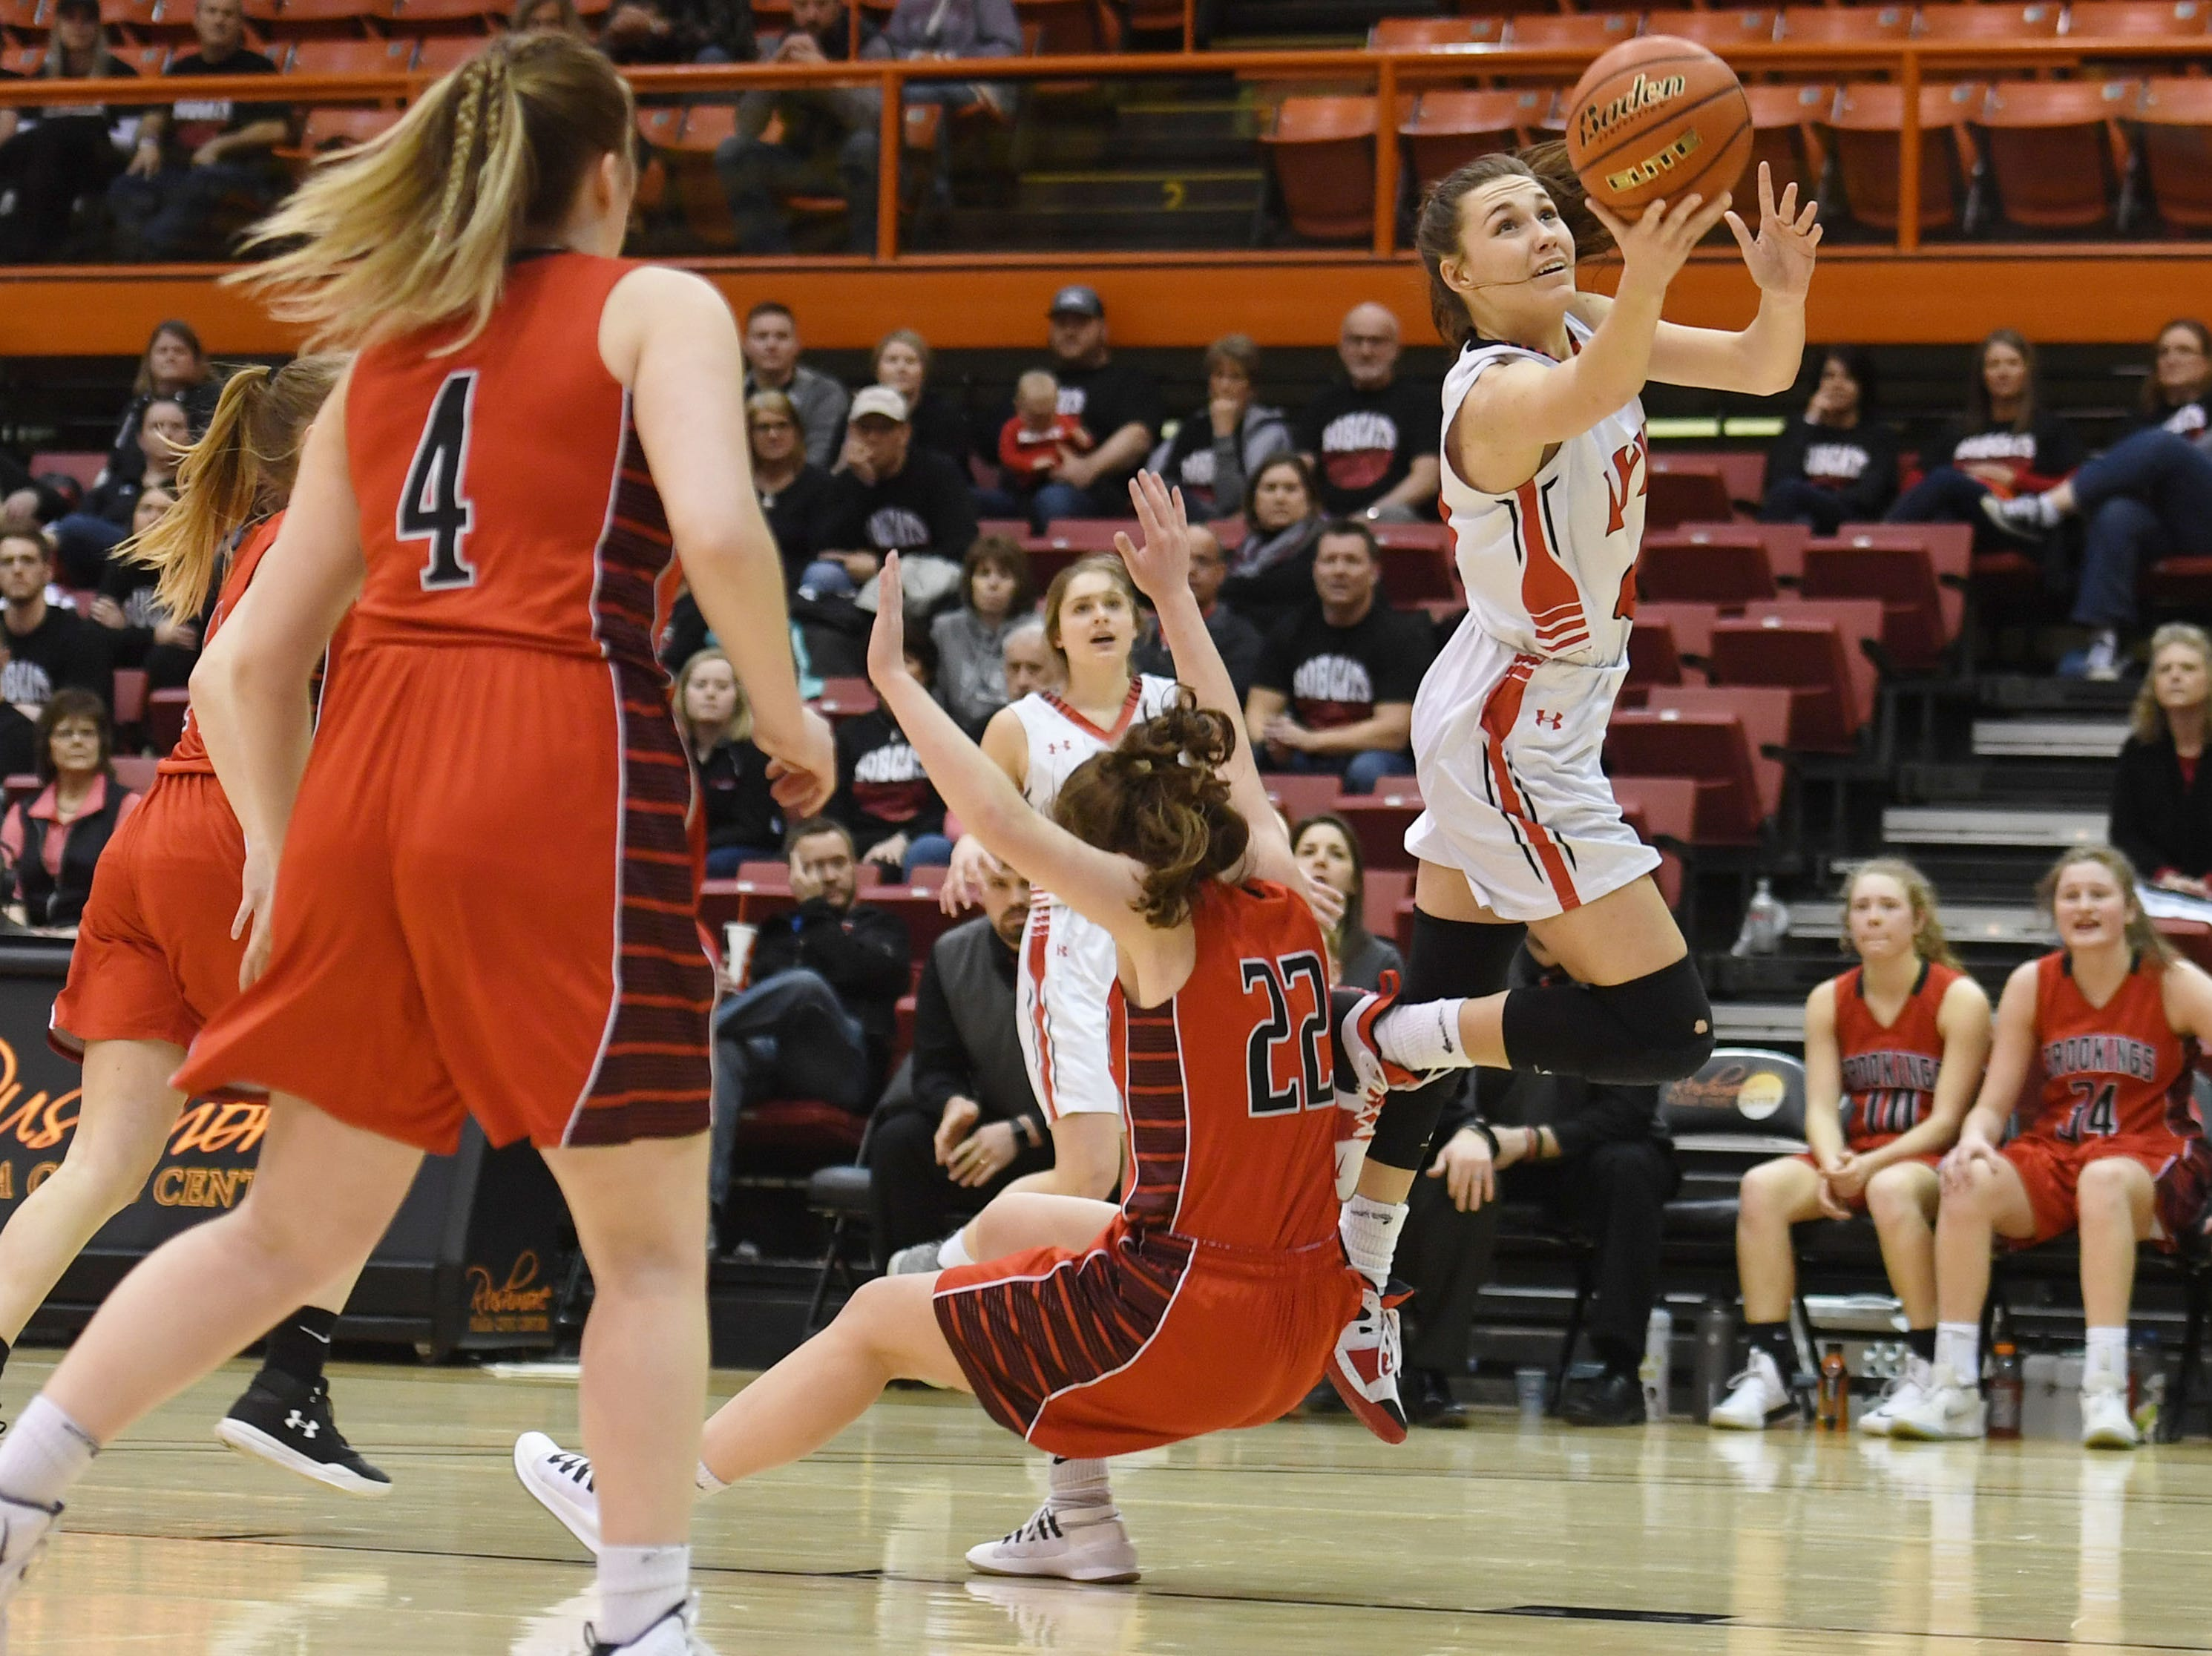 Brandon Valley's Trinity Law takes a shot against Brookings in the Class AA quarterfinals Thursday, March 14, in Rapid City.